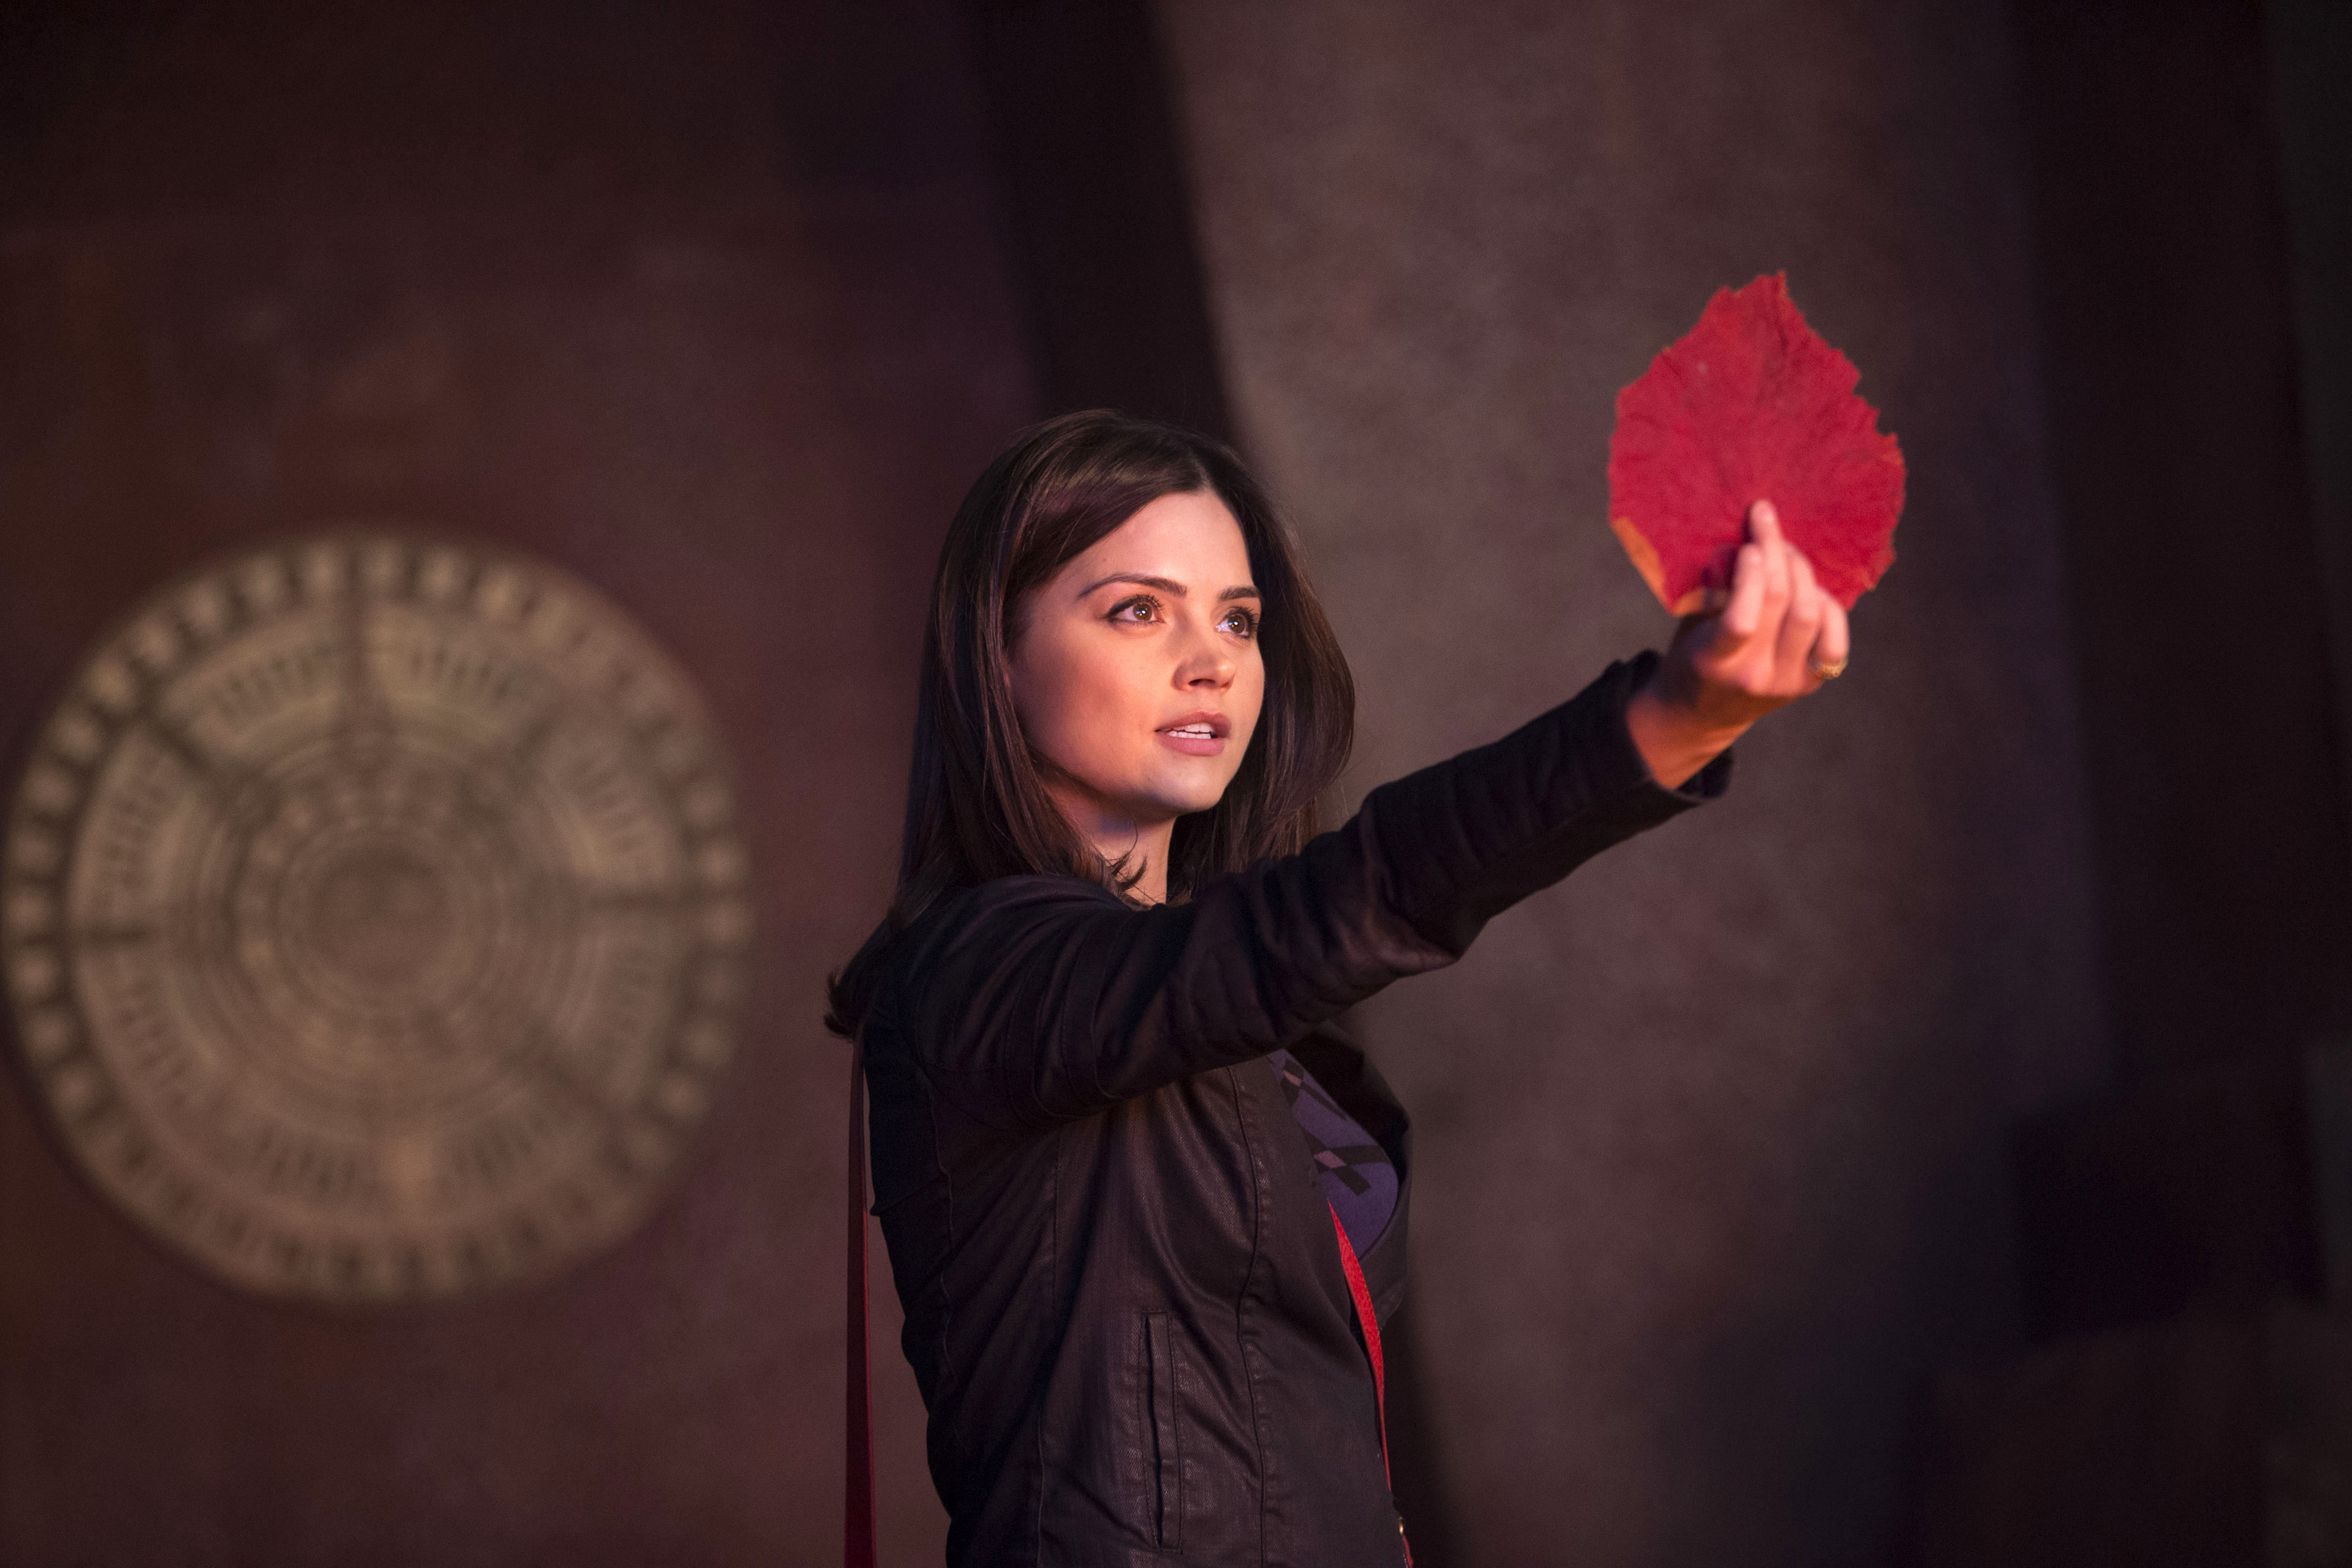 A very brief glimpse of the next episode with commentary from Matt and Jenna…